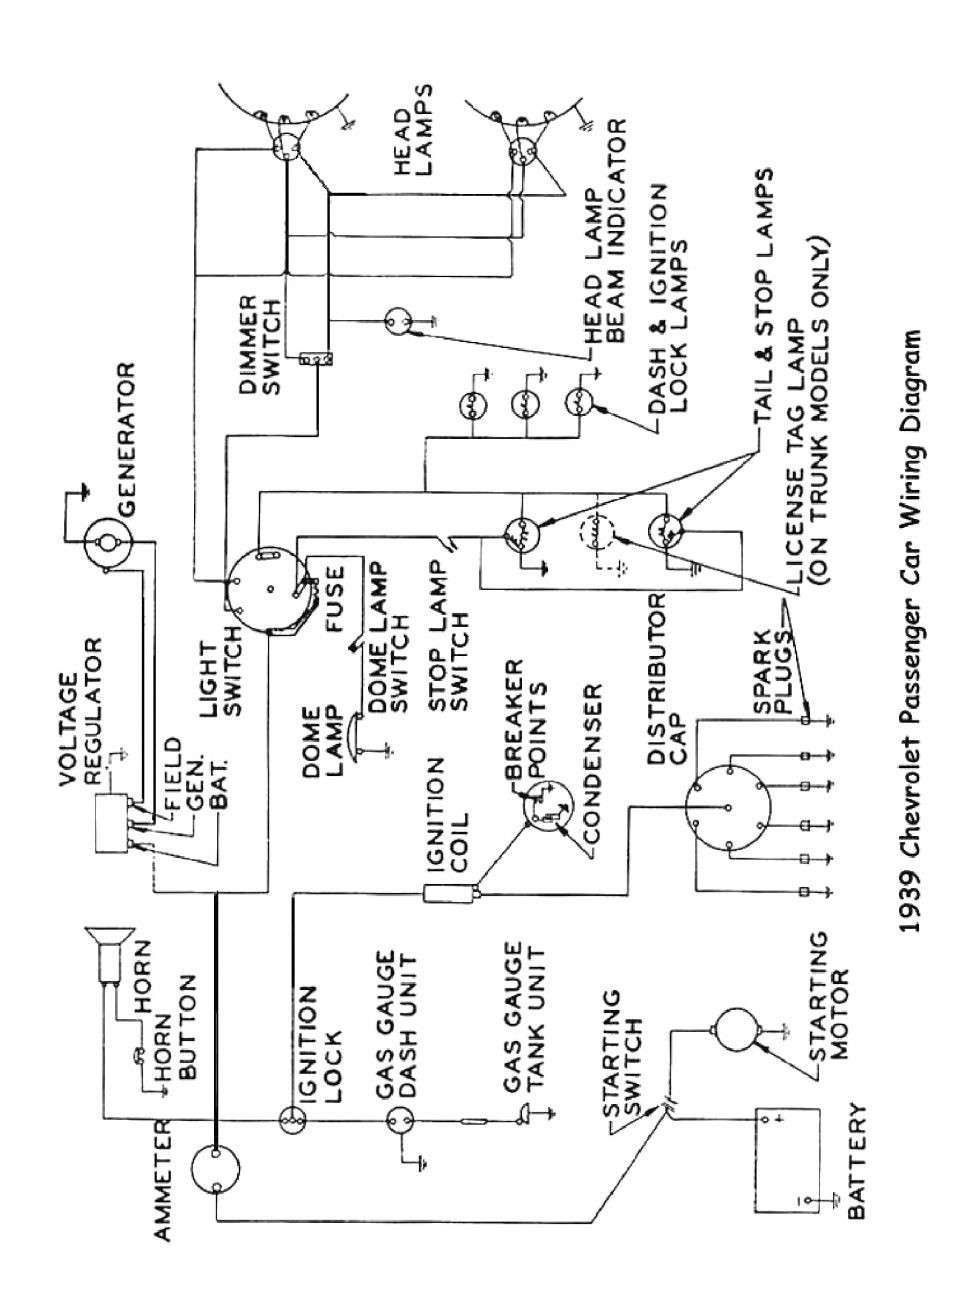 Wiring Diagram Outlets. Beautiful Wiring Diagram Outlets